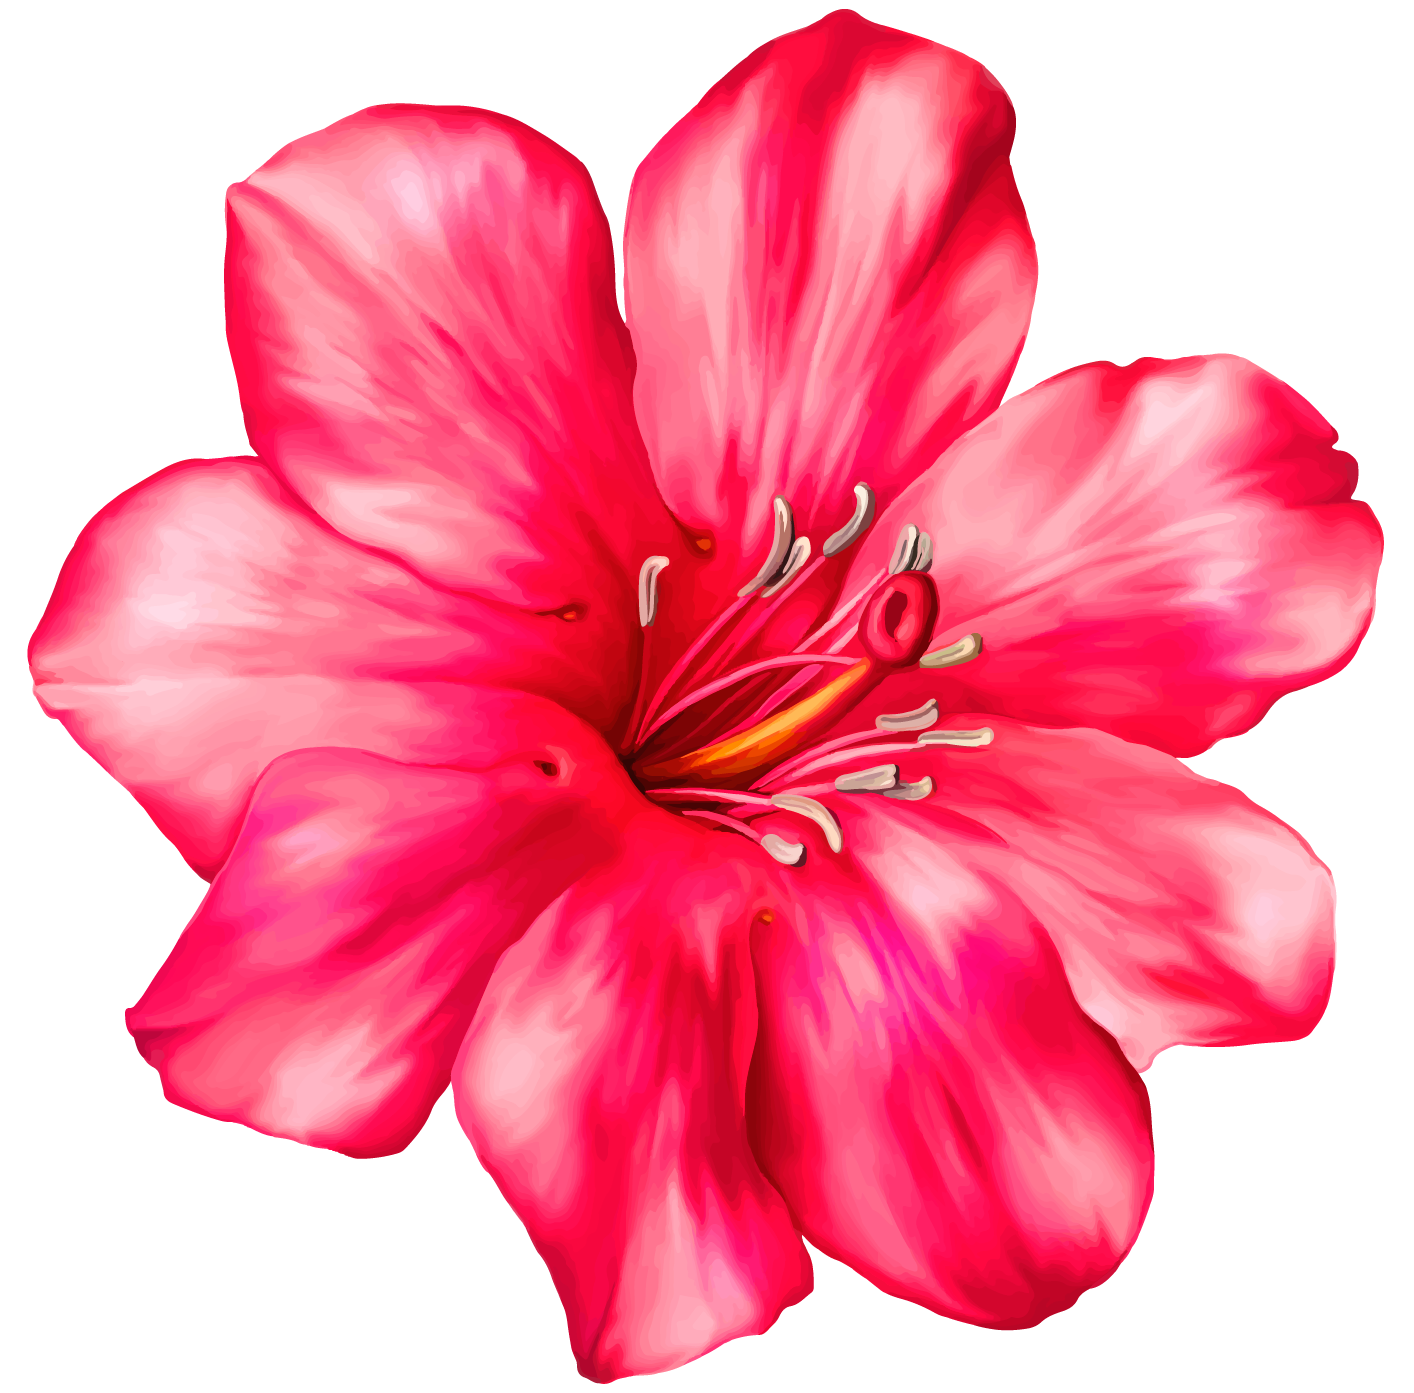 Realistic flower clipart